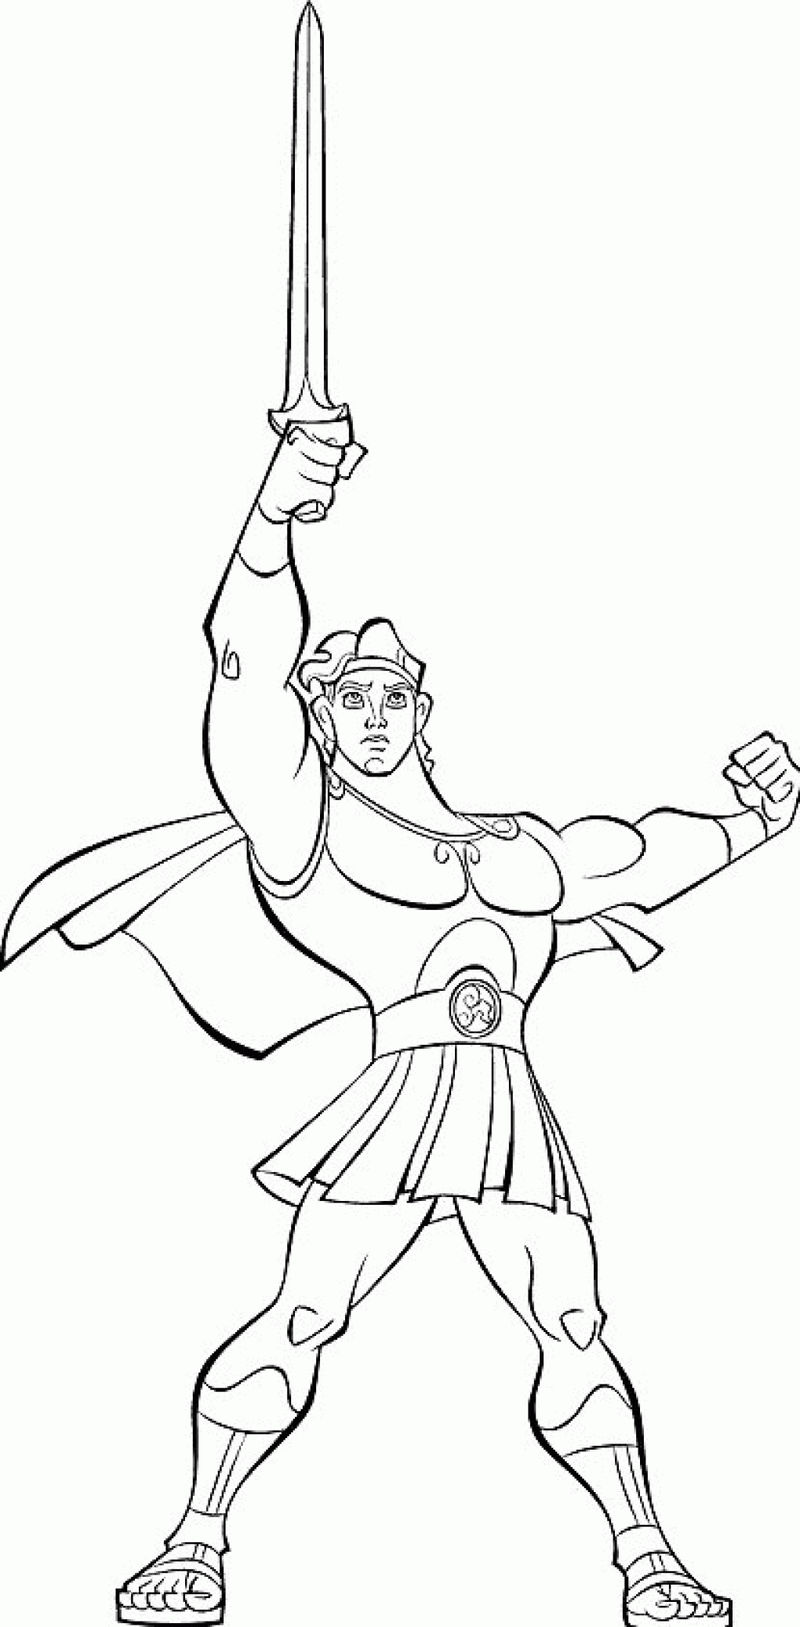 Hercules Coloring Pages For Kids Coloring Sheets